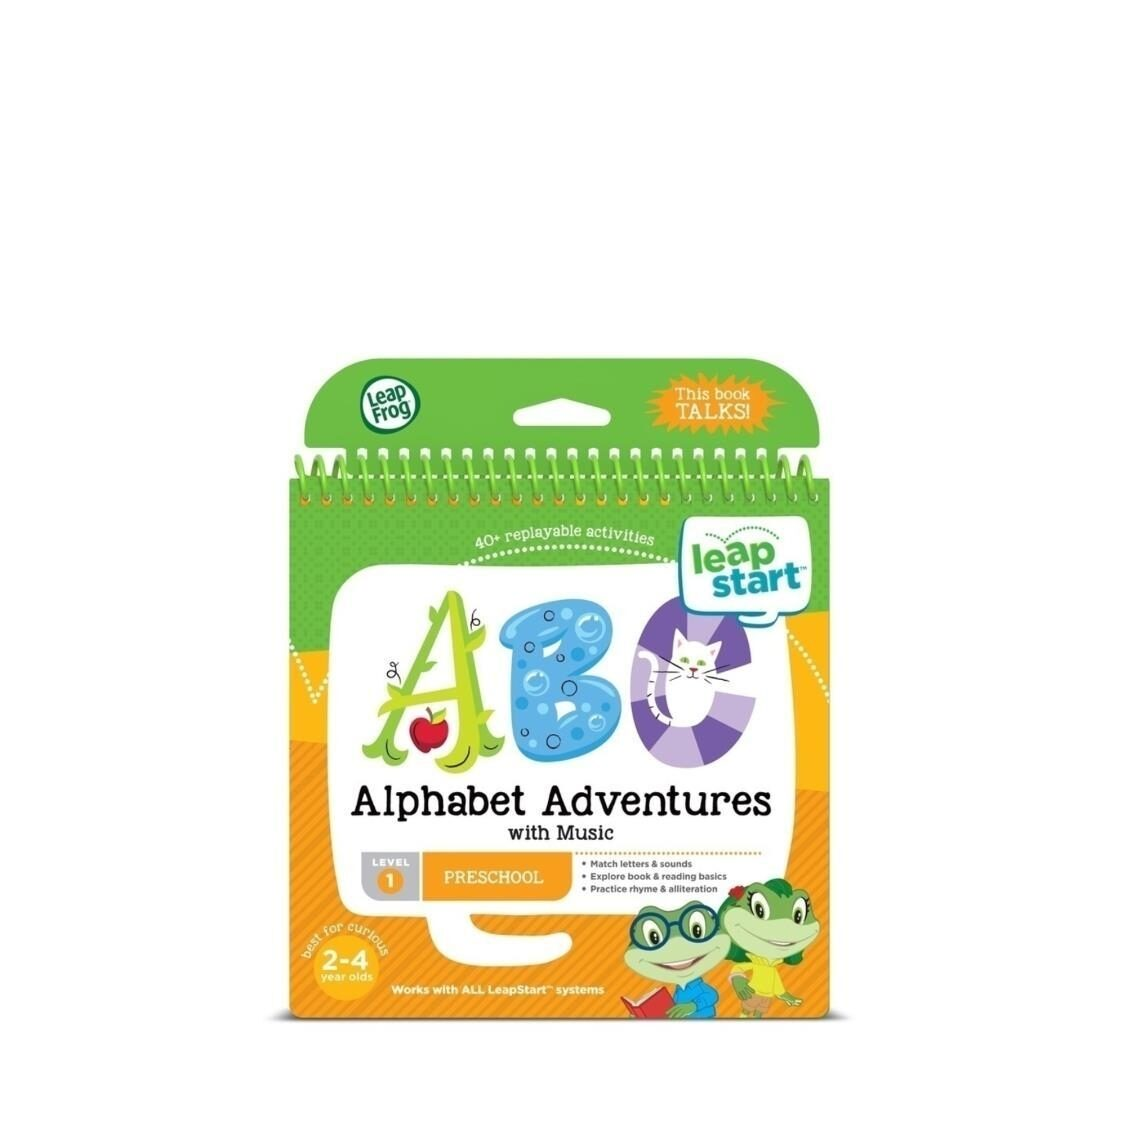 Leapstart Book Alphabet Adventures with Music